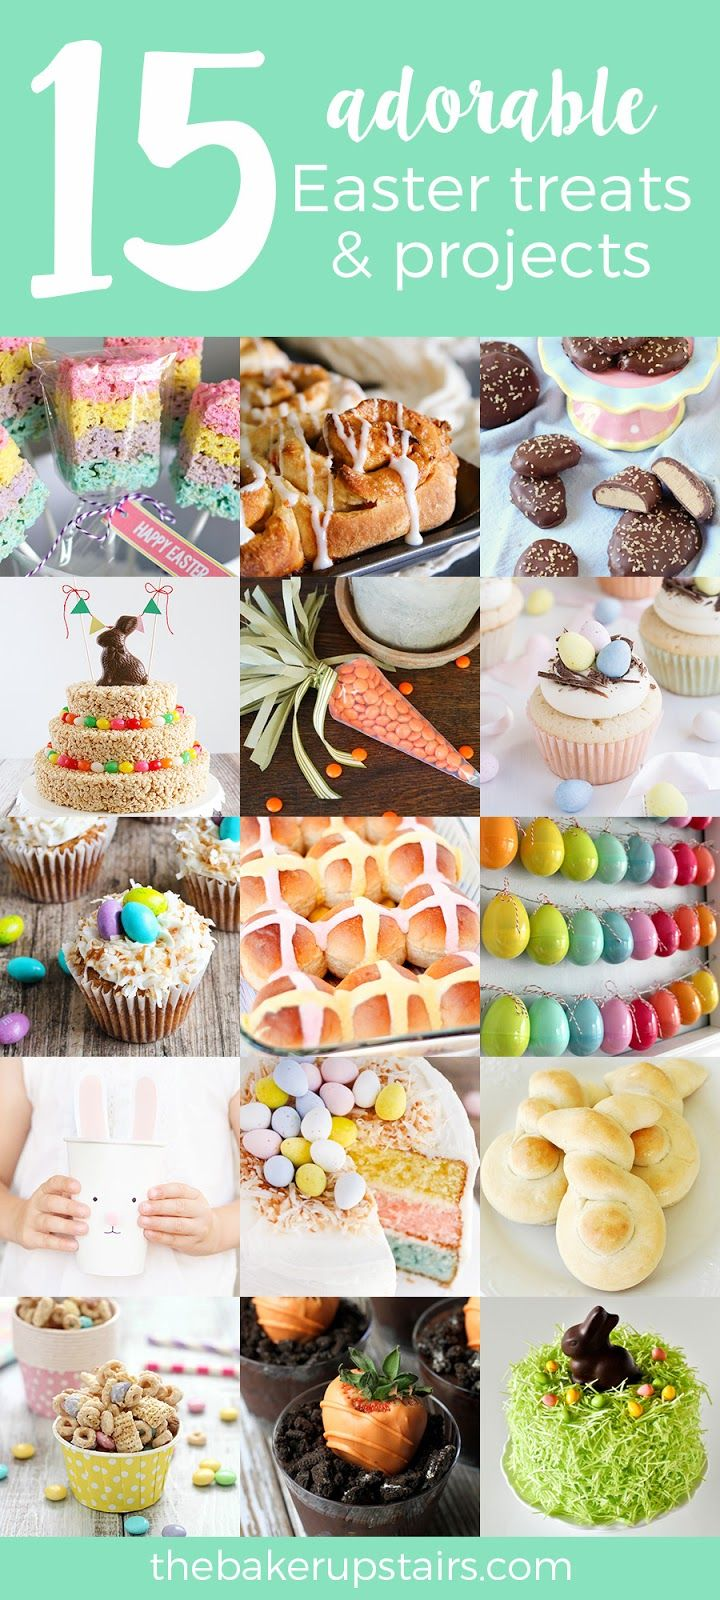 15 Adorable Easter Treats and Projects 608